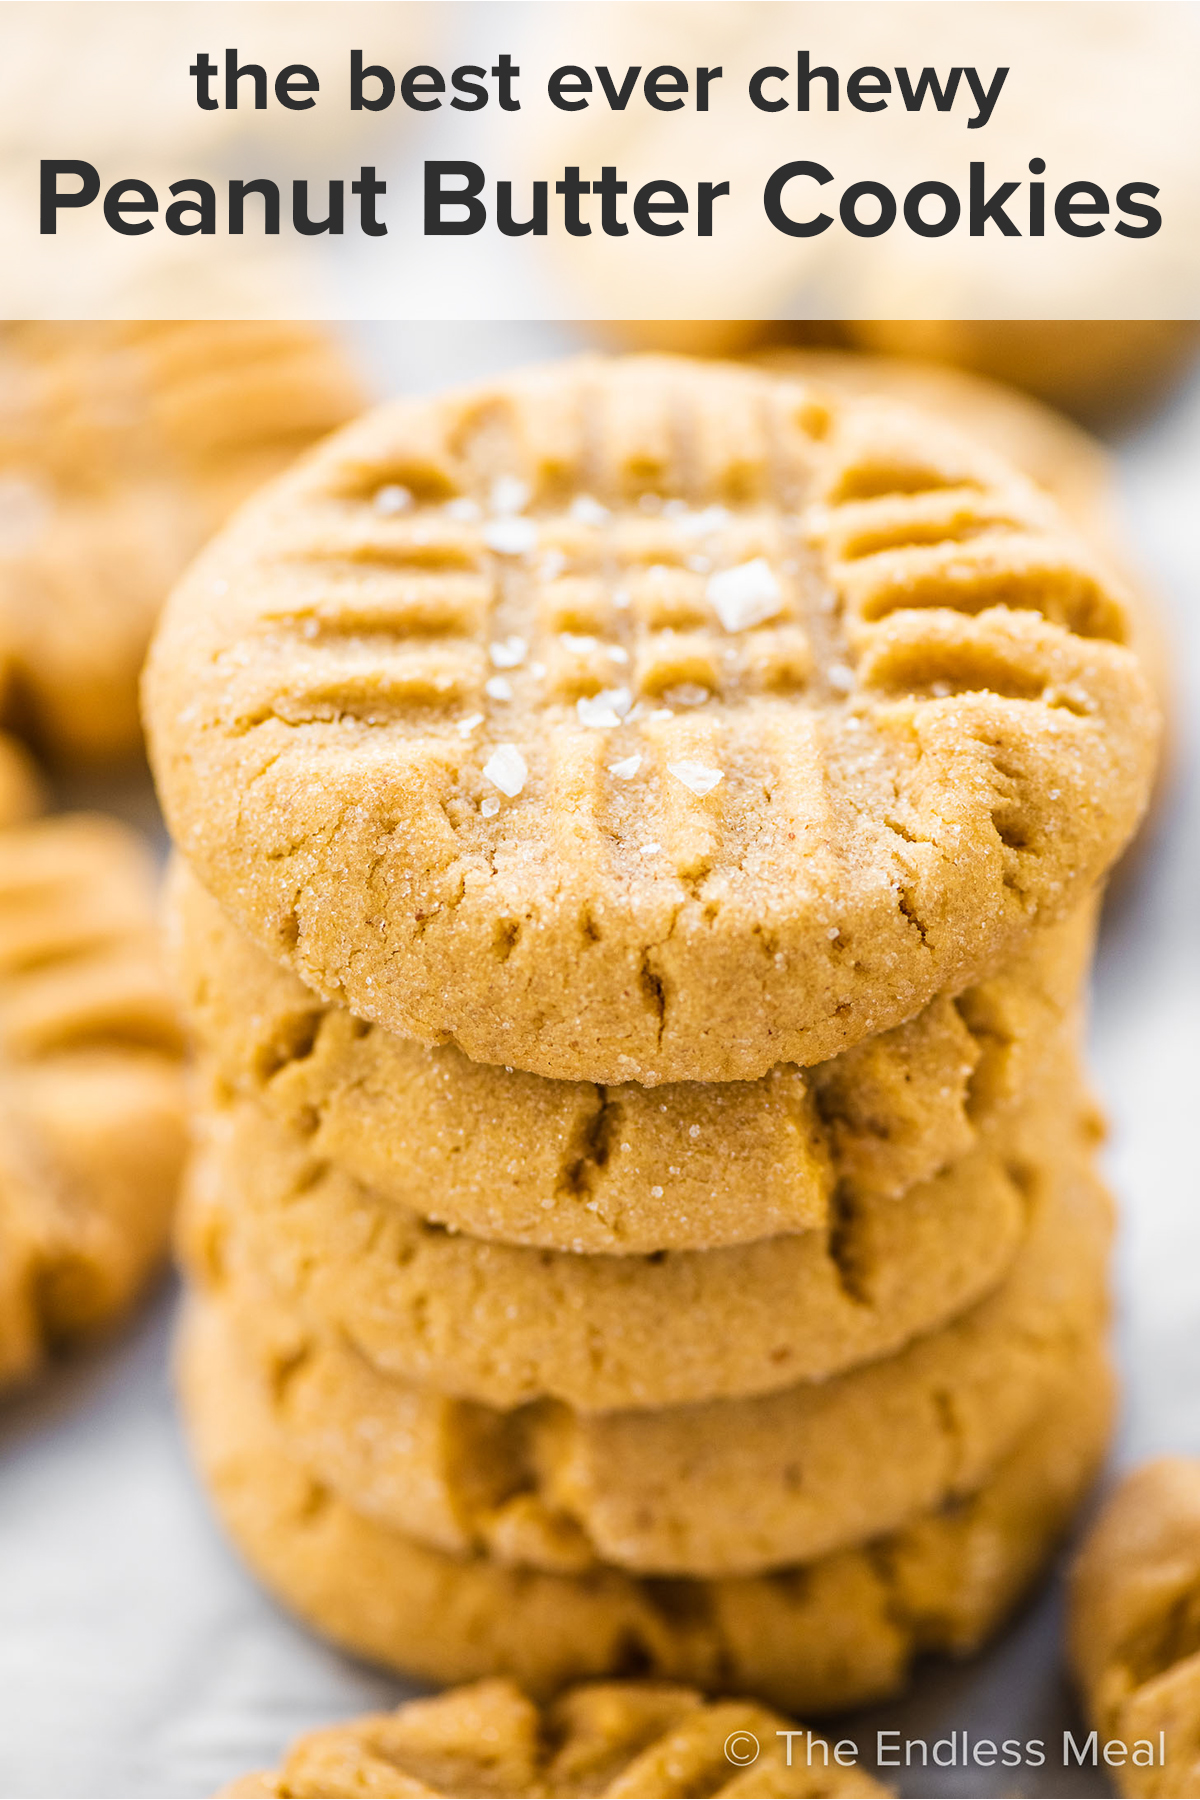 A stack of chewy peanut butter cookies with the recipe title on top of the picture.